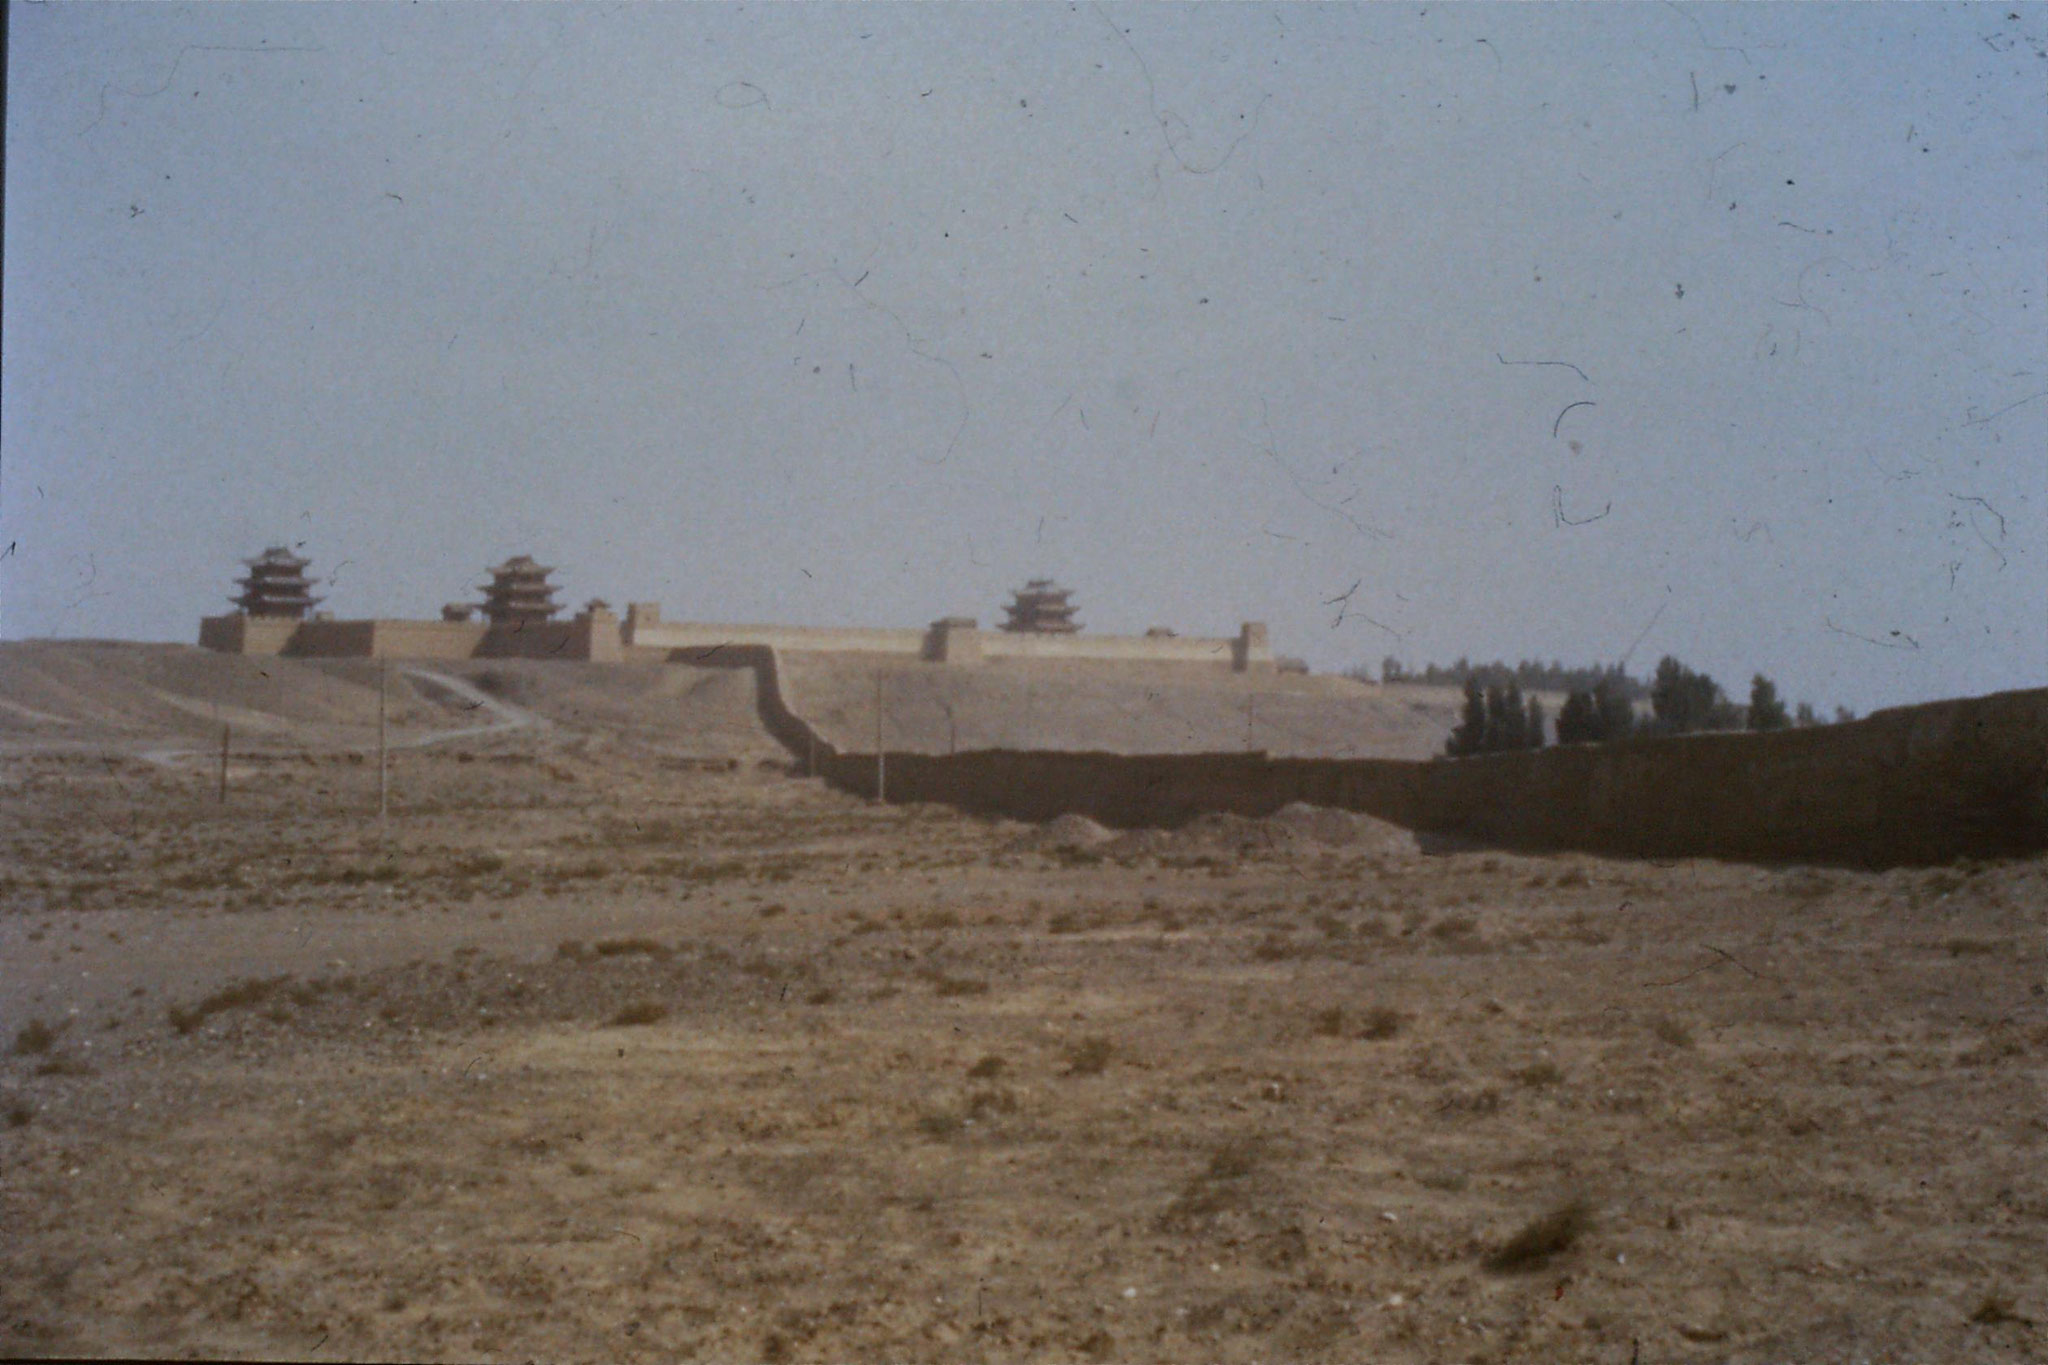 24/8/1989:18: Jiayuguan, end of wall, looking towards Qilian Shan